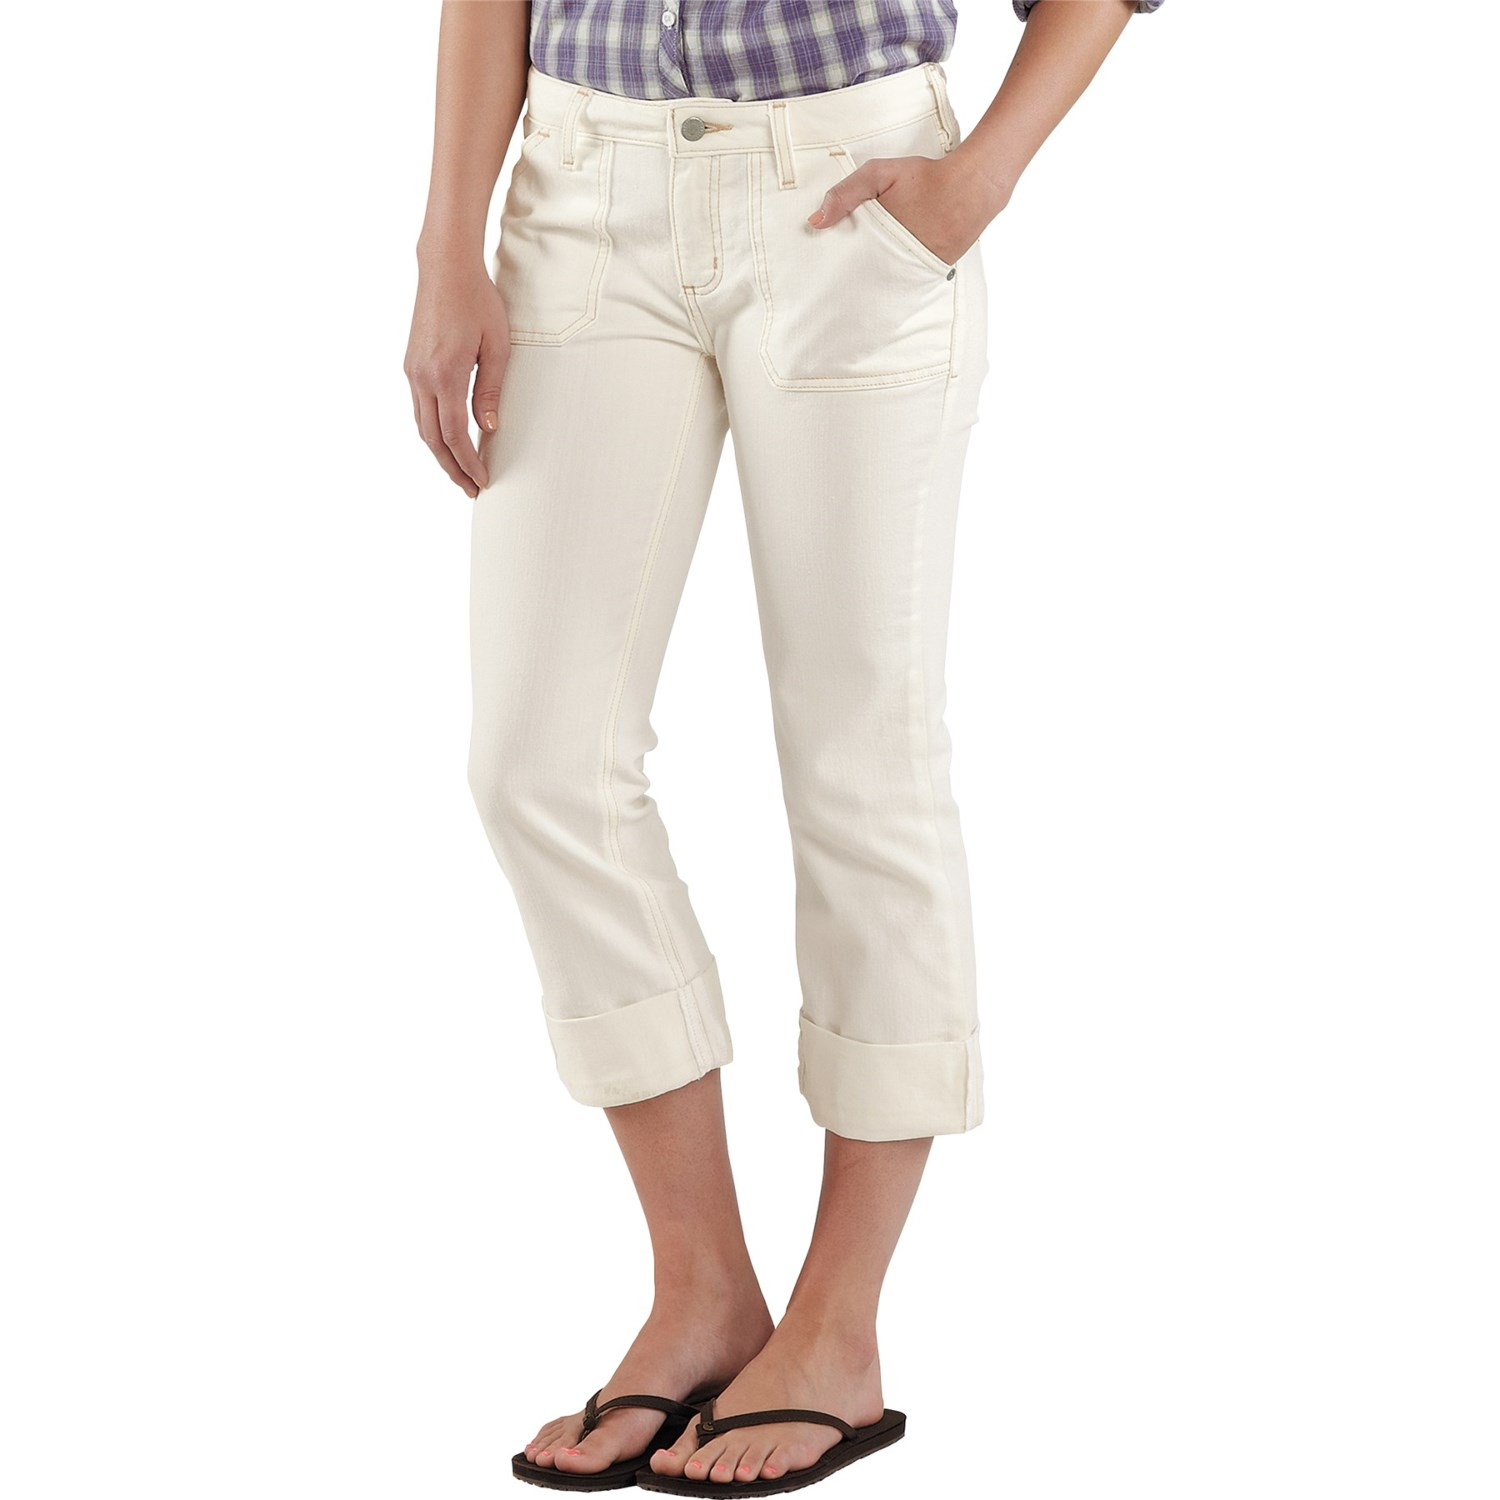 Shop brilliantly cut, modern capri pants from Lee. Explore stylish women's denim capris and knit capris, cut at a perfect length for a perfect movability. Relaxed Fit Capri - Petite. $ Compare Quick Shop. EXTENDED SIZES Relaxed Fit Austyn Cargo Capri - Petite Lee Riders Cuffed Curvy Capri. $ Compare Quick Shop (1) Lee Riders.